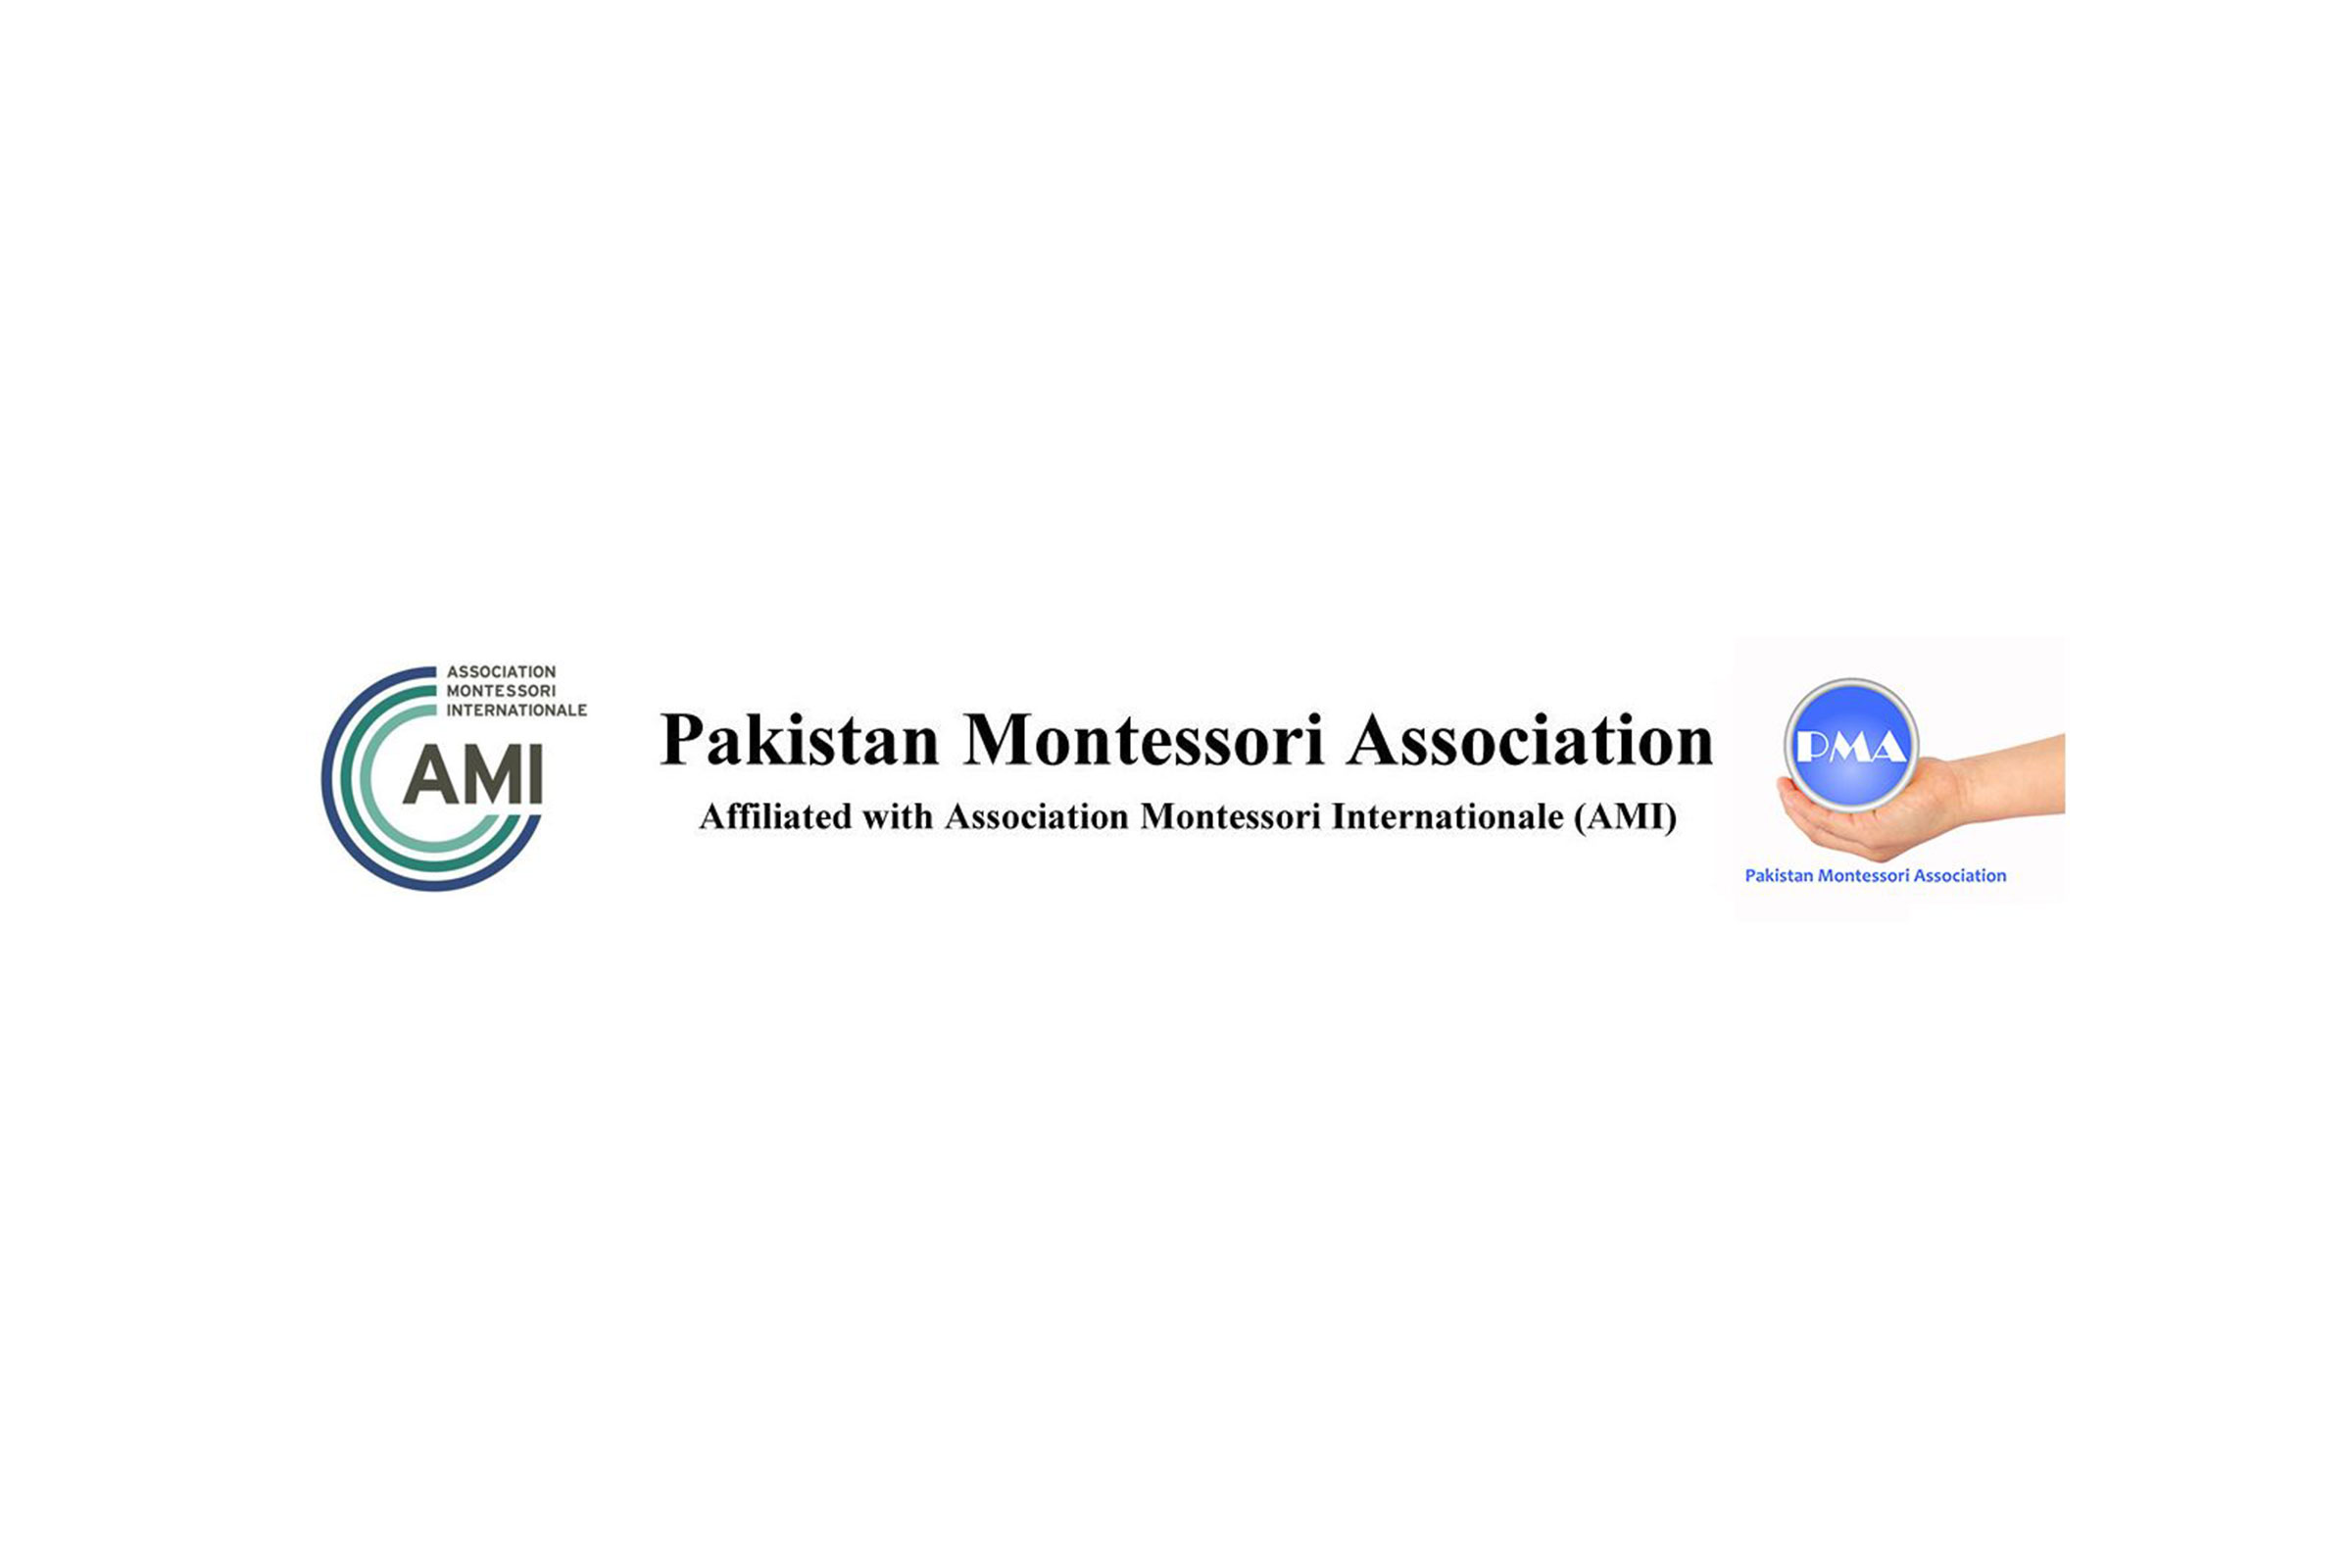 The Pakistan Montessori Association logo